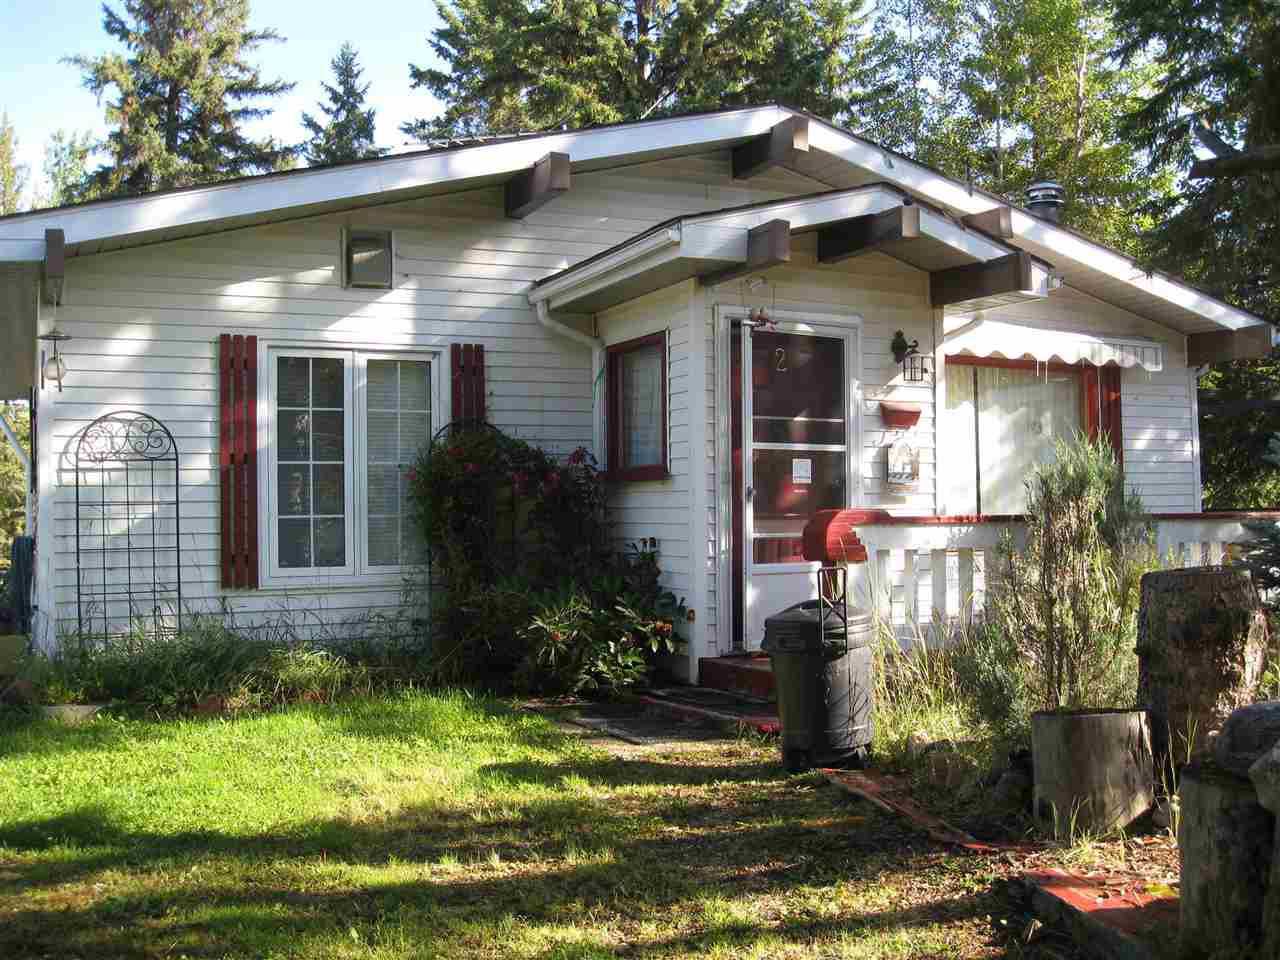 MLS® listing #E4174588 for sale located at 2, 54114 Rge Rd 52